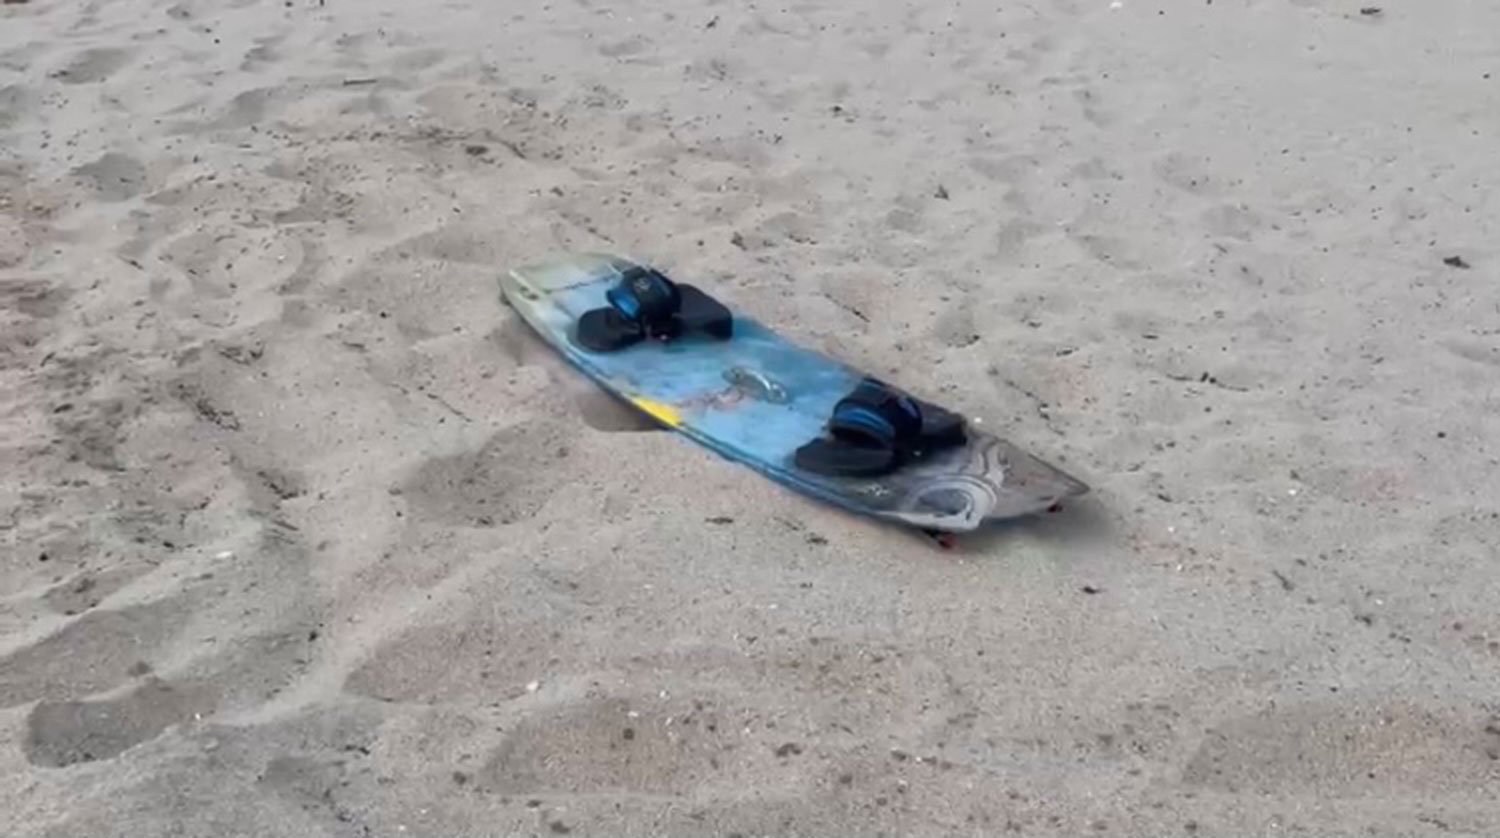 Kite Surfer Dies After Flying into the Side of a Florida House